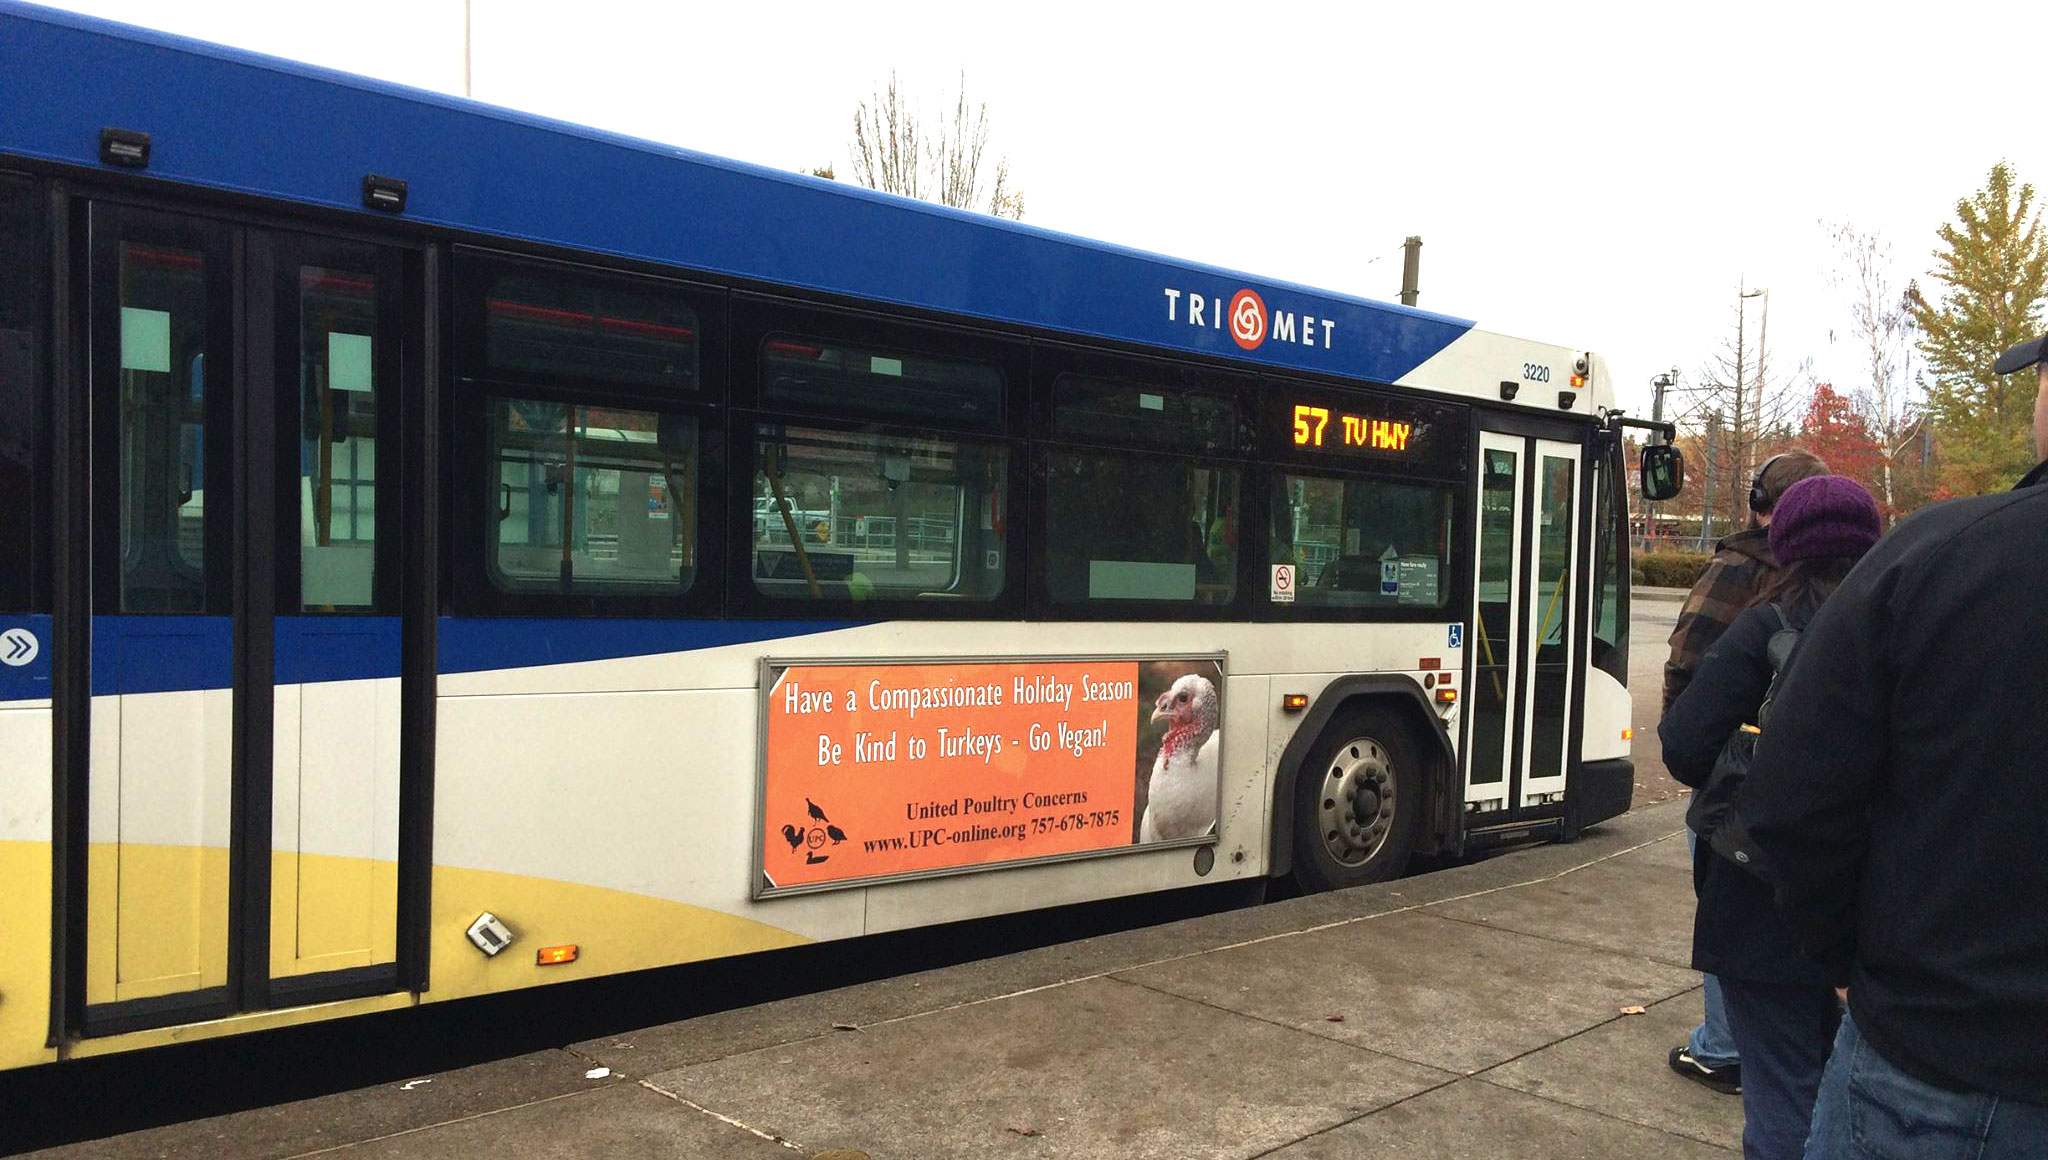 Bus sign: Have a Compassionate Holidy Season. Be Kind to Turkeys - Go Vegan!.